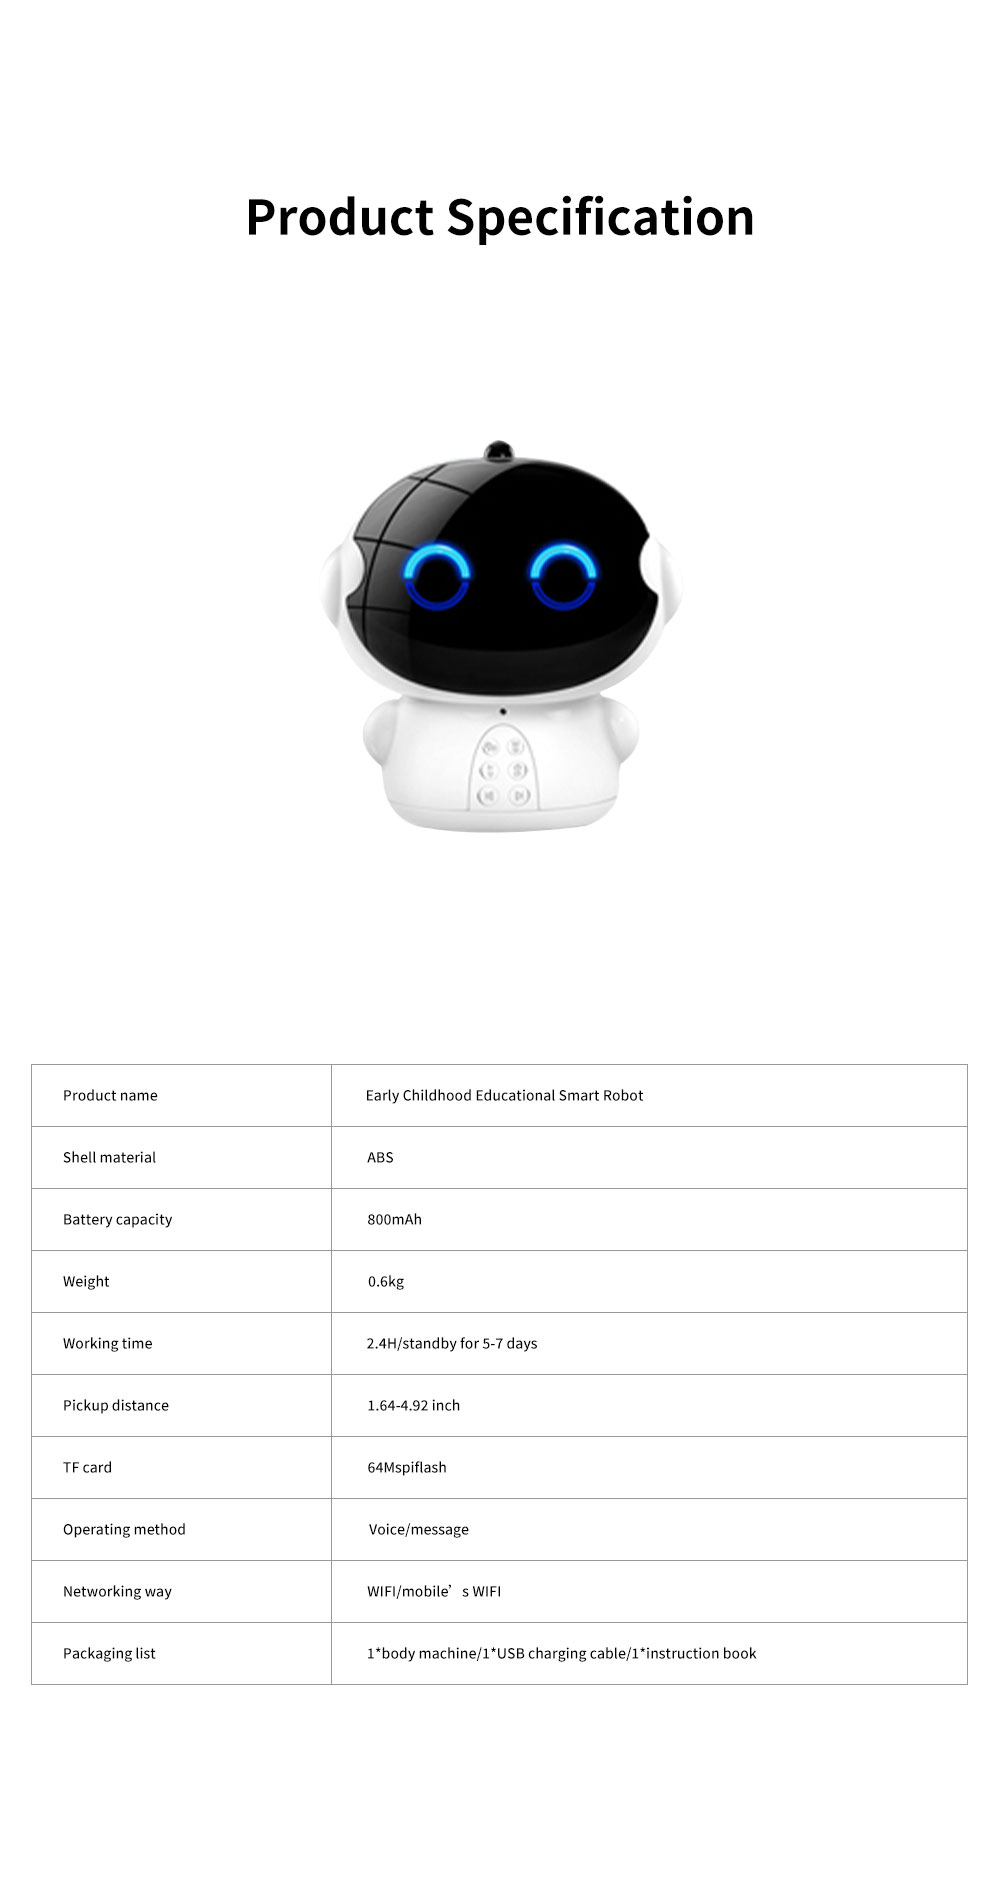 Educational Smart Robot for Children Early Childhood Learning Machine Support Wifi Chatting Music Story Kinds of Knowledge and Rich Functions 6